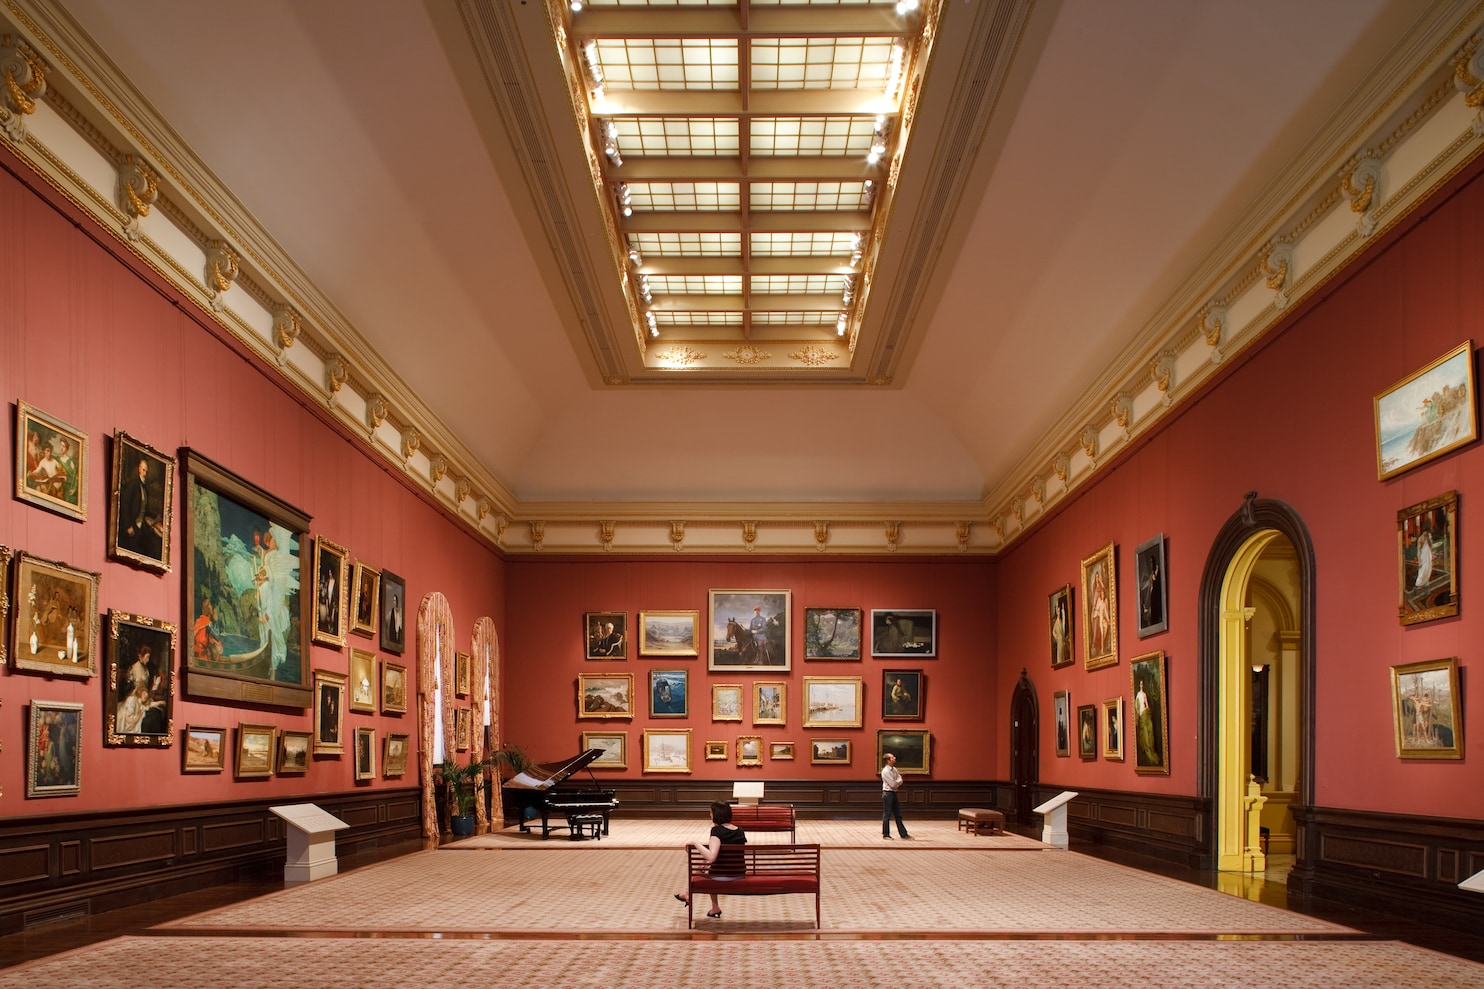 Grand Salon Renwick Gallery S Two Year Renovation Will Craft A Cutting Edge